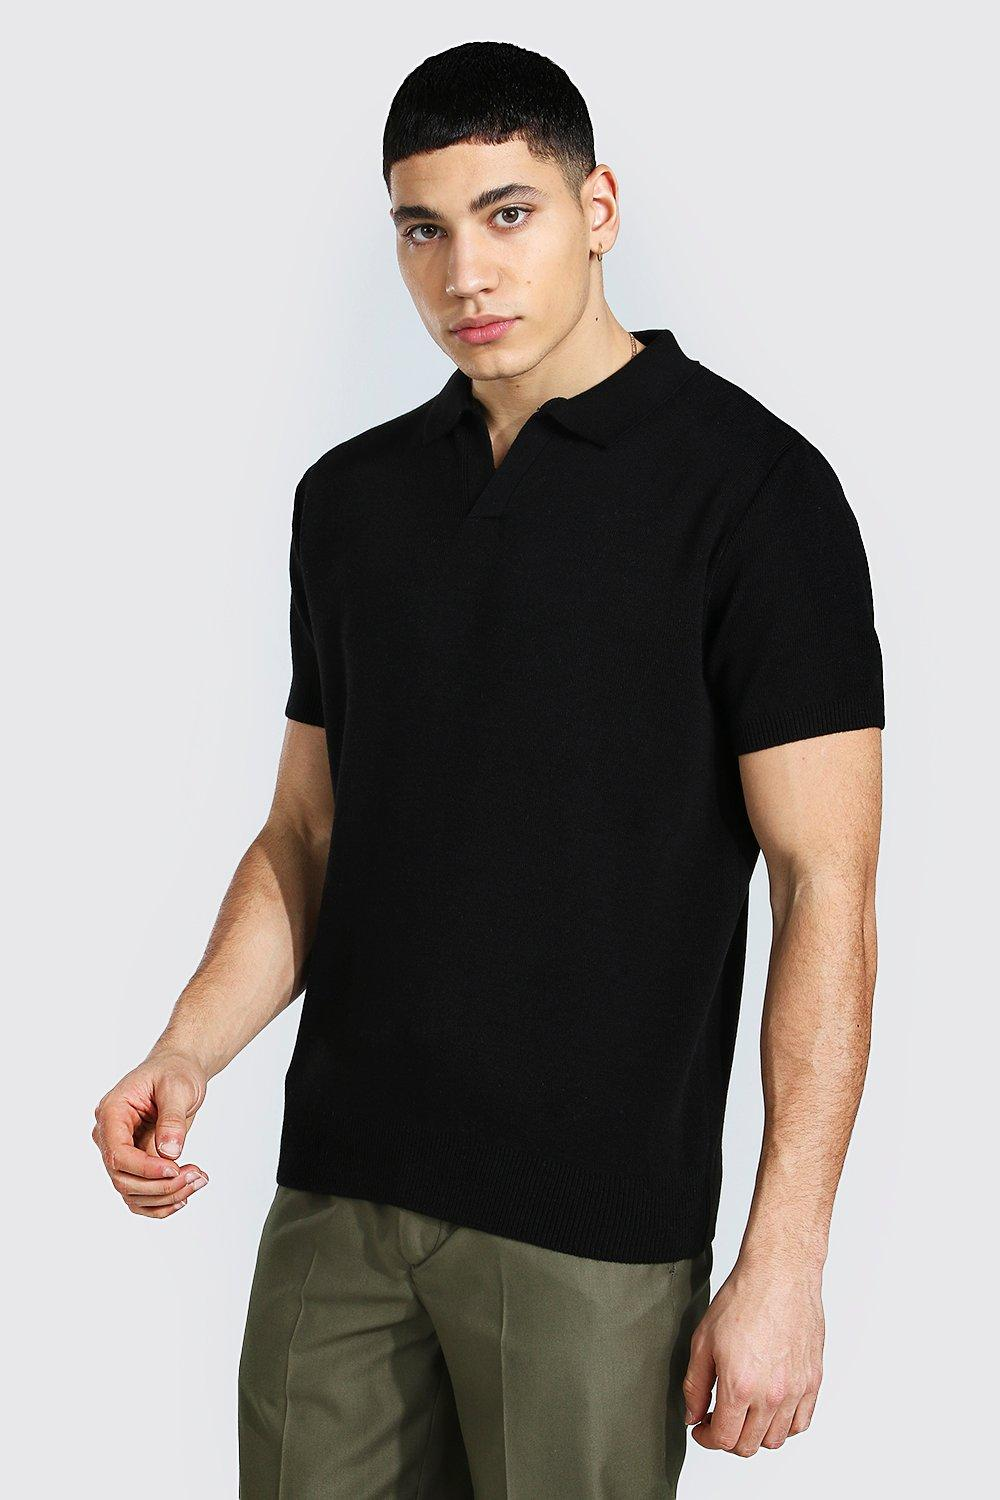 1930s Men's Fashion Guide- What Did Men Wear? Mens Short Sleeve Revere Collar Knitted Polo - Black $10.80 AT vintagedancer.com